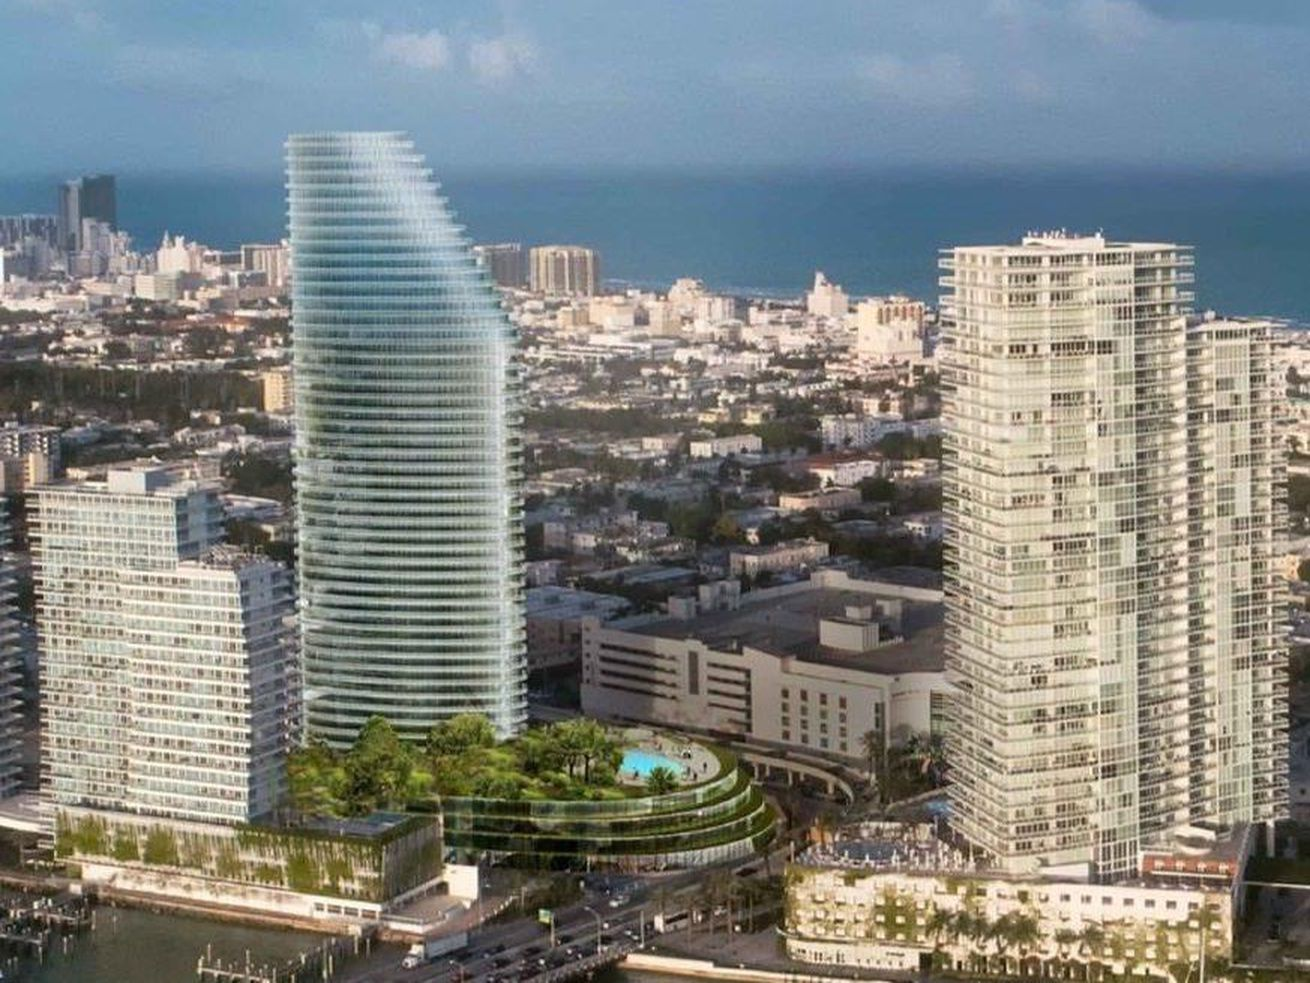 An earlier rendering showing the 42-story version of the project.